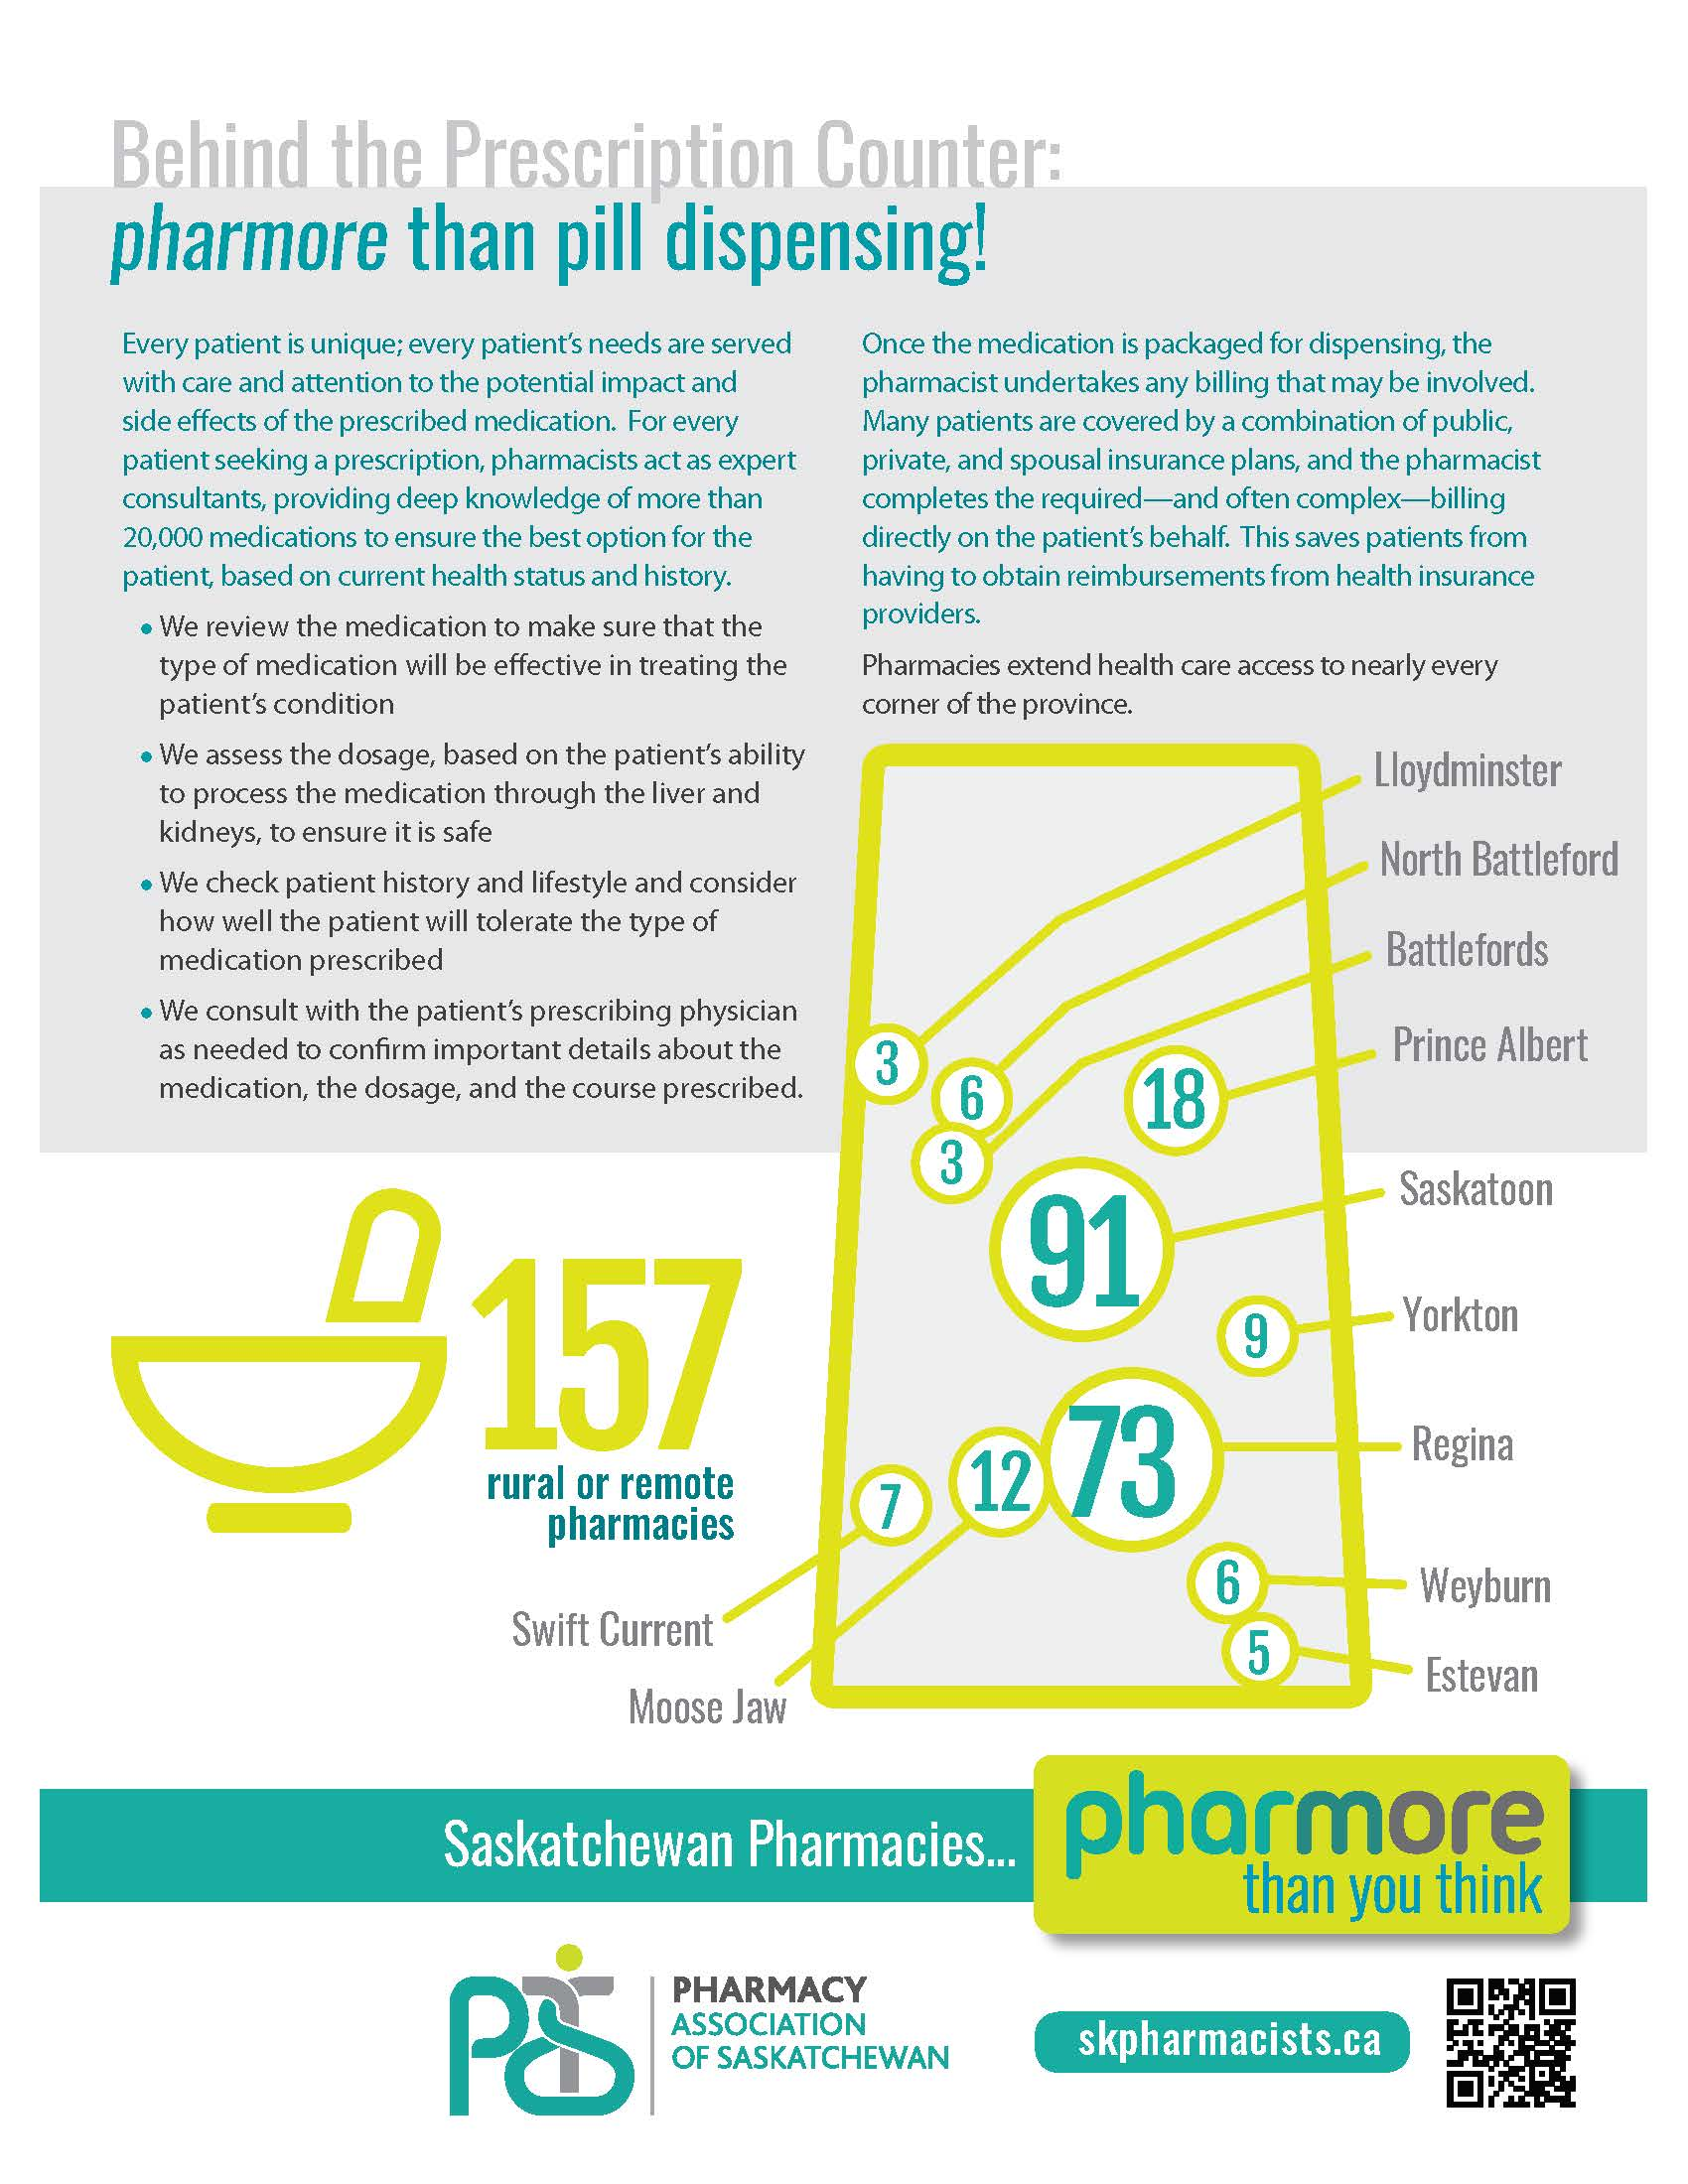 Infographic (side 2) about Community Pharmacies: Pharmore Than You Think...